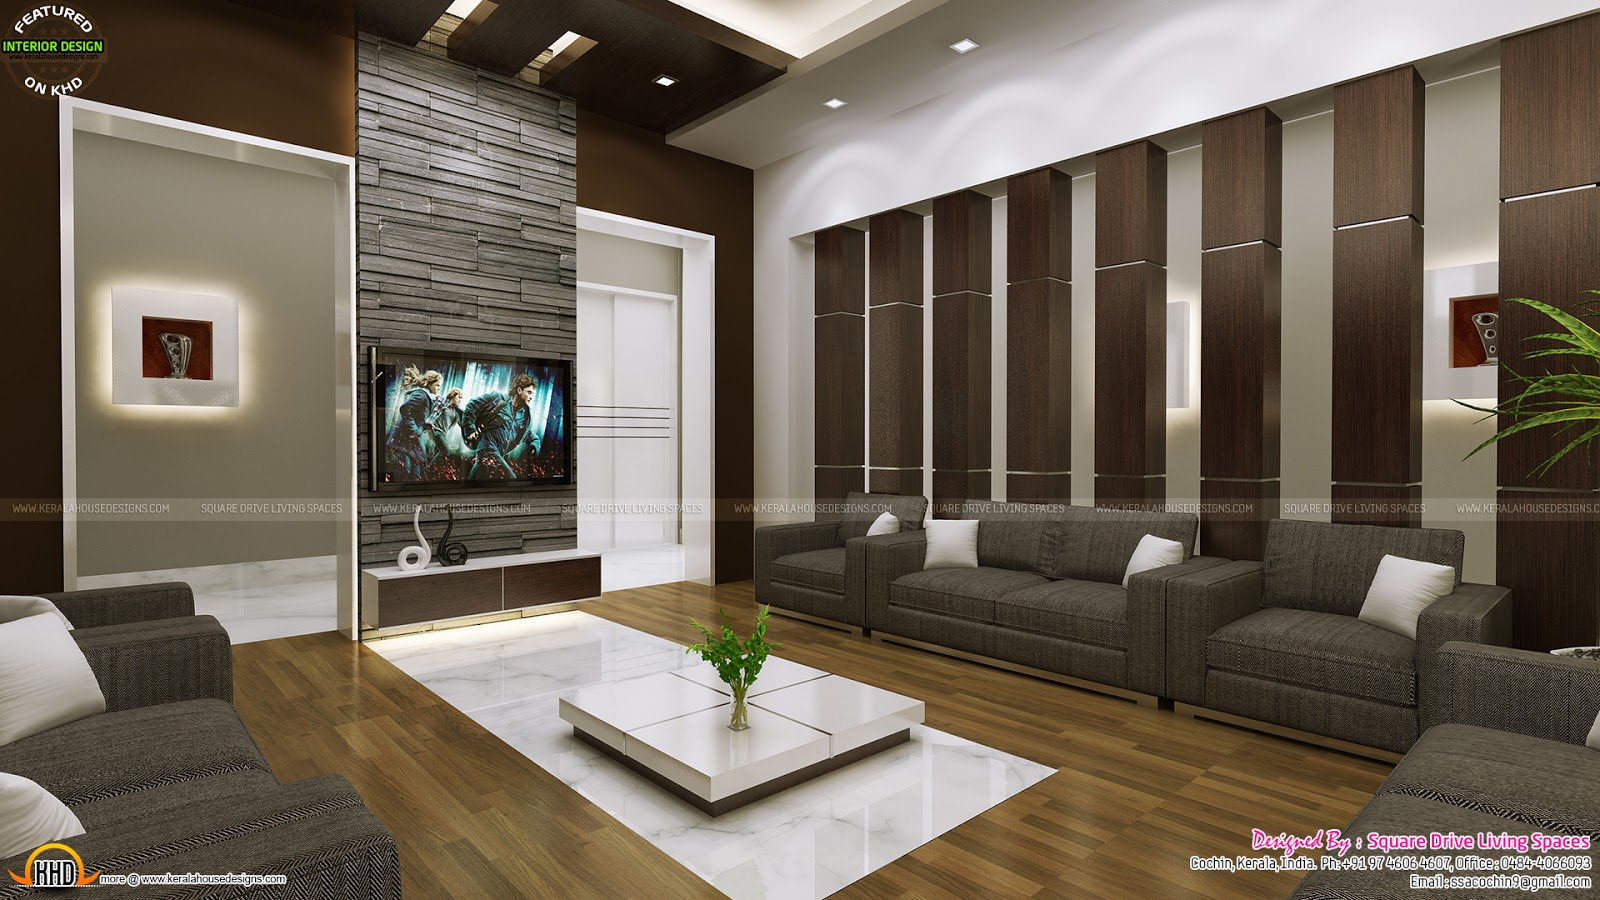 Attractive home interior ideas kerala home design and for House design photos interior design